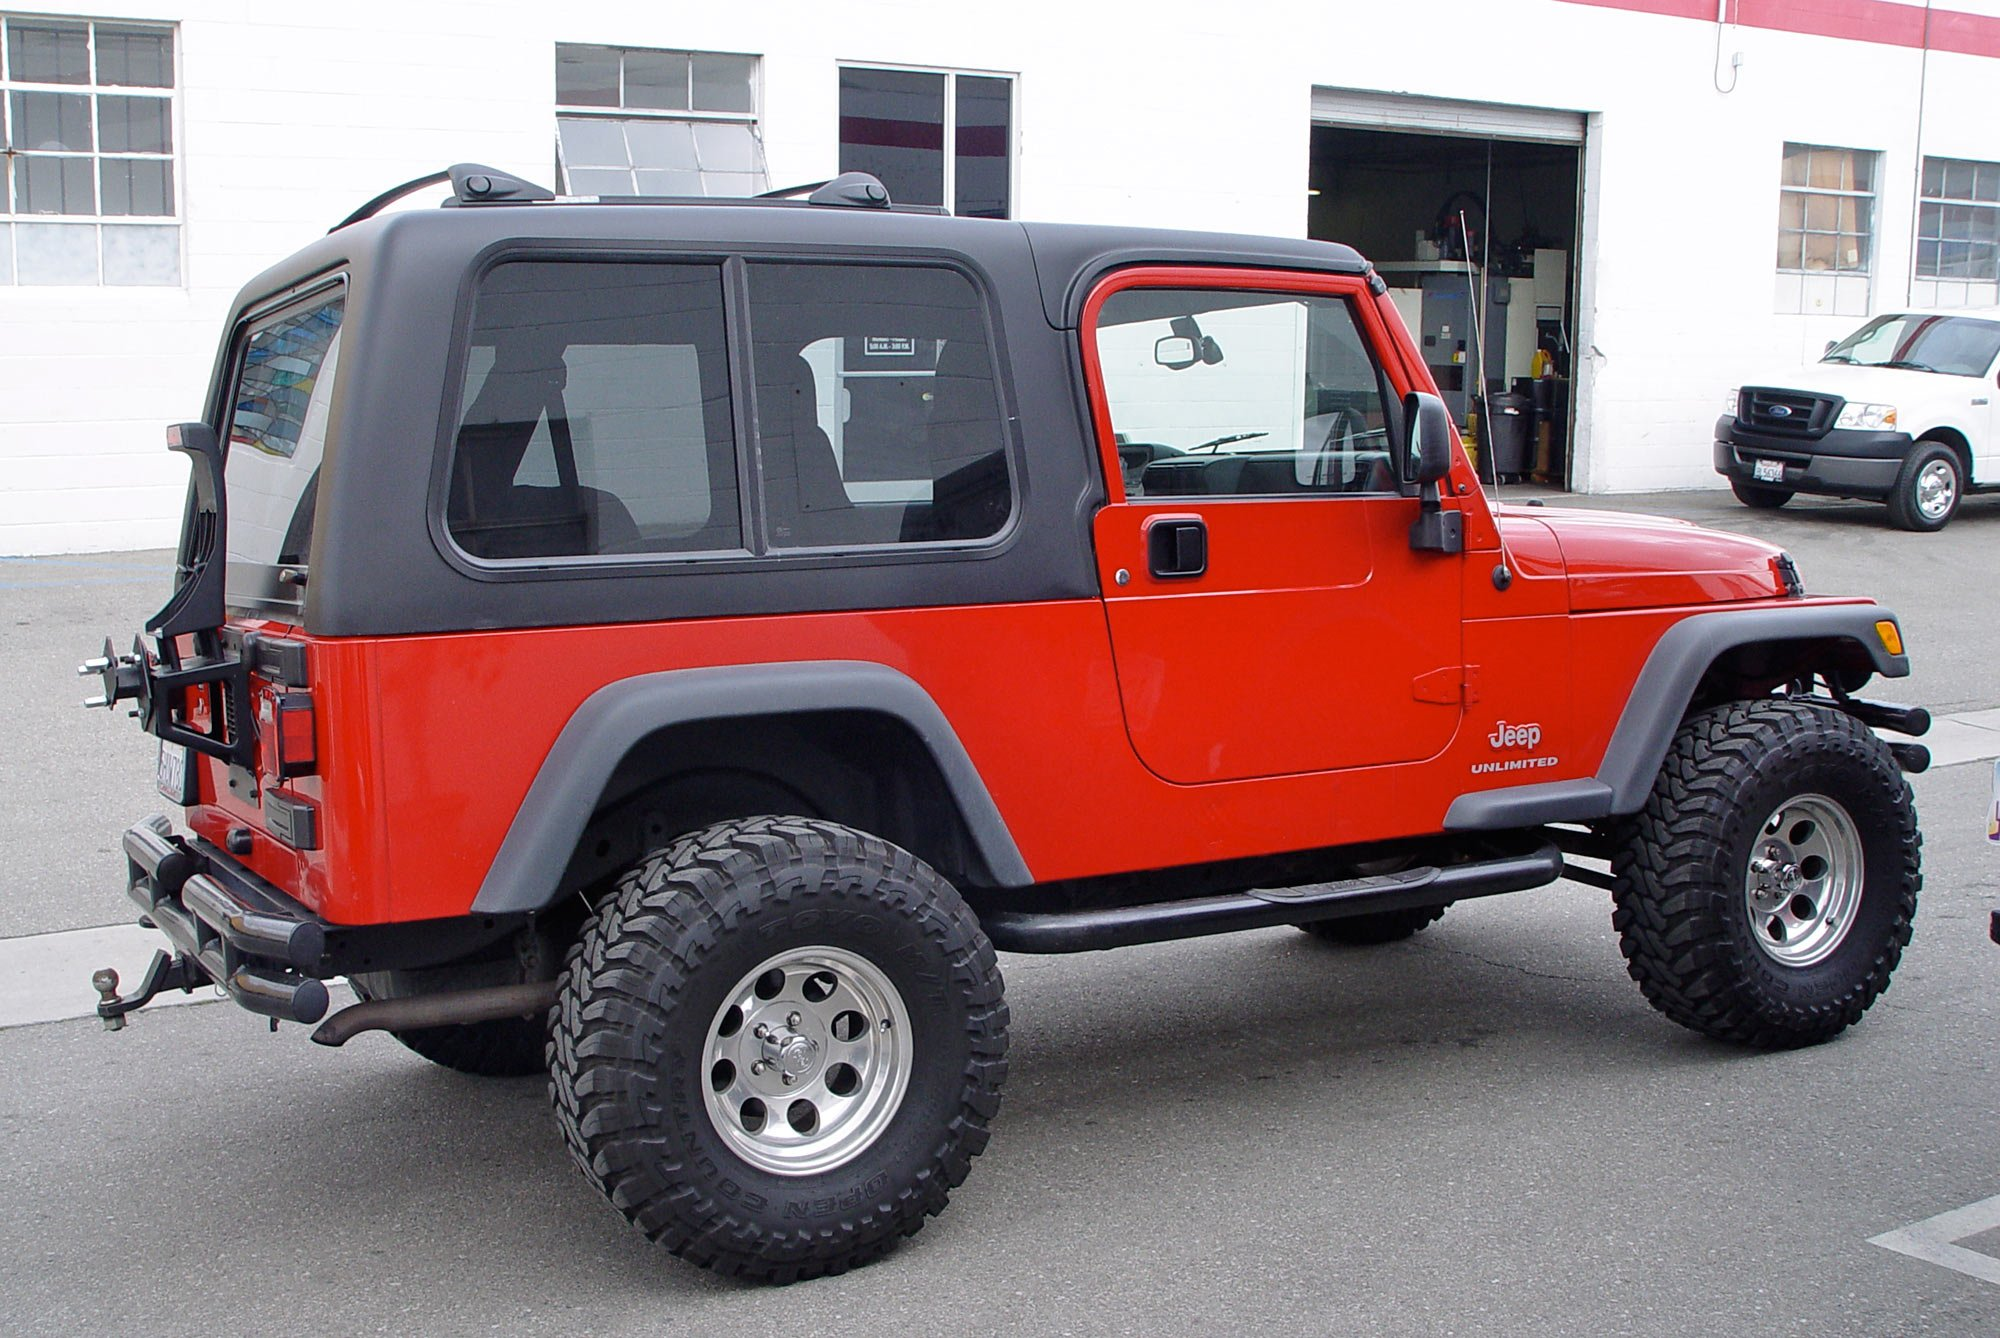 Hardtop Depot Quality For Jeep Wrangler Yj 1986 1995 1988 Hard Top Gallery